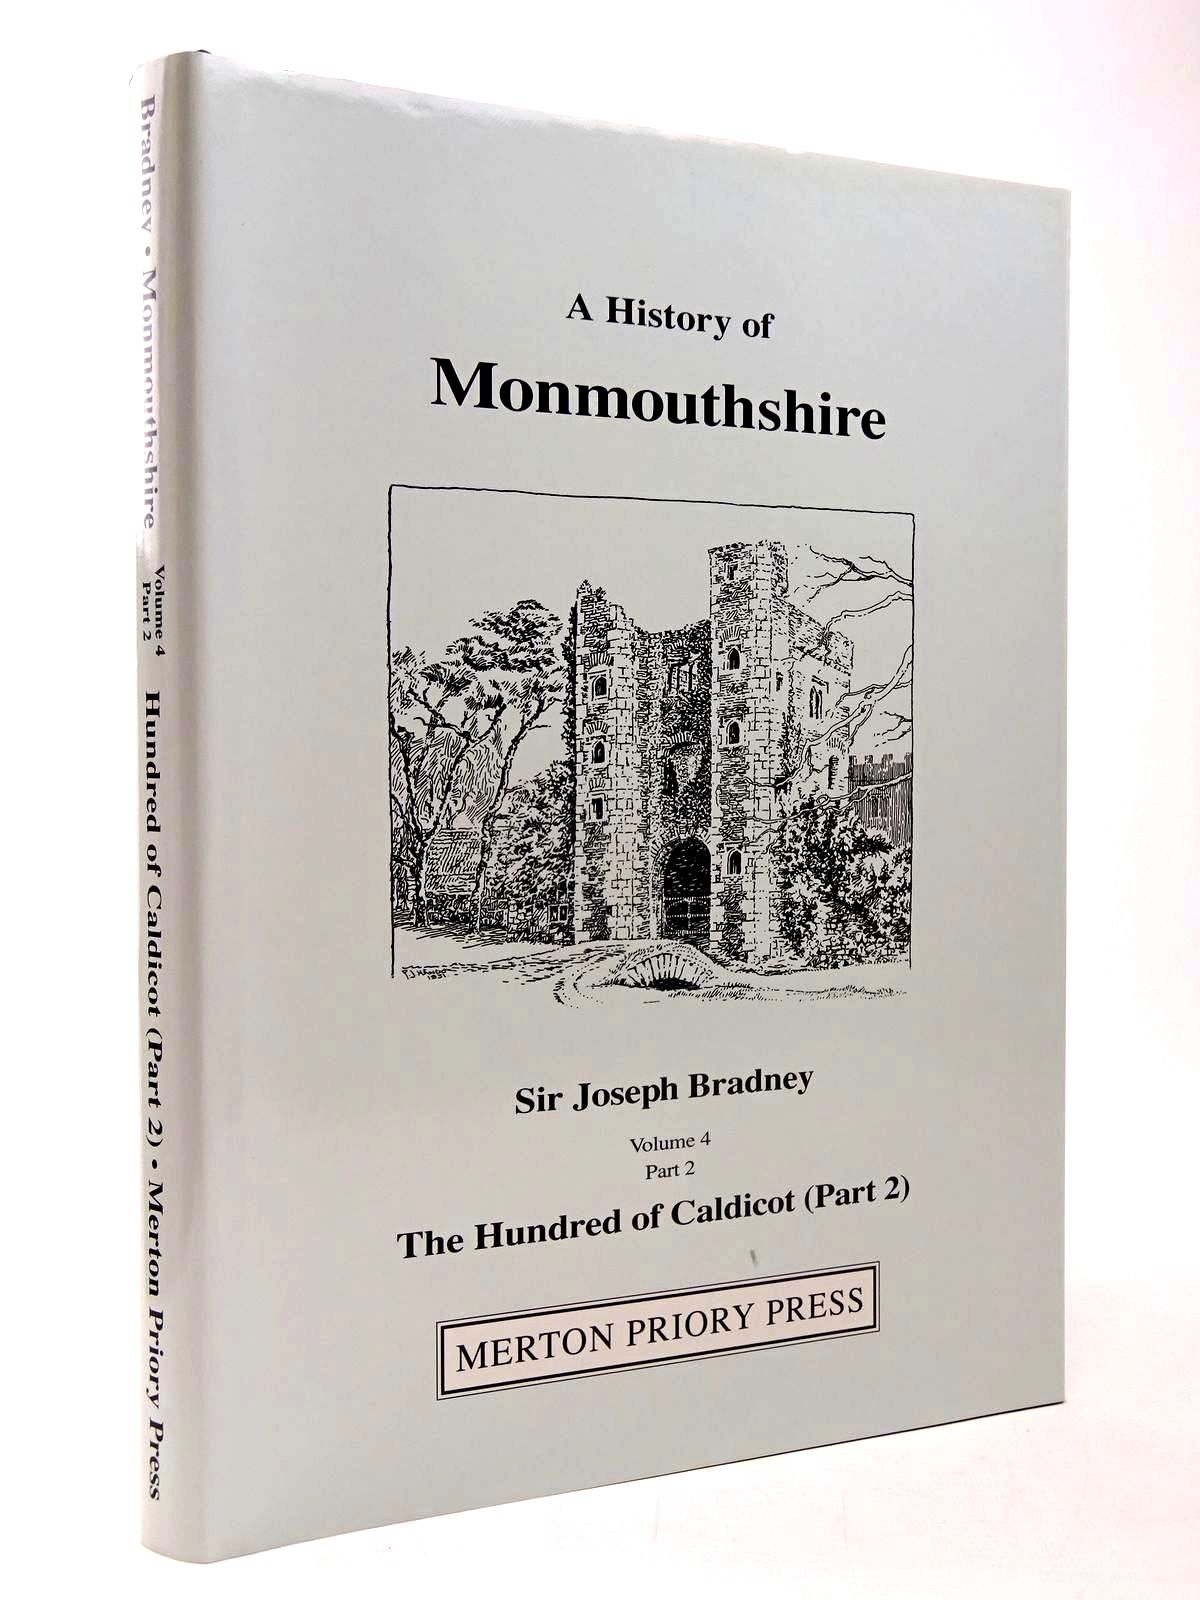 Photo of A HISTORY OF MONMOUTHSHIRE THE HUNDRED OF CALDICOT PART 2 written by Bradney, Joseph published by Merton Priory Press (STOCK CODE: 2130292)  for sale by Stella & Rose's Books